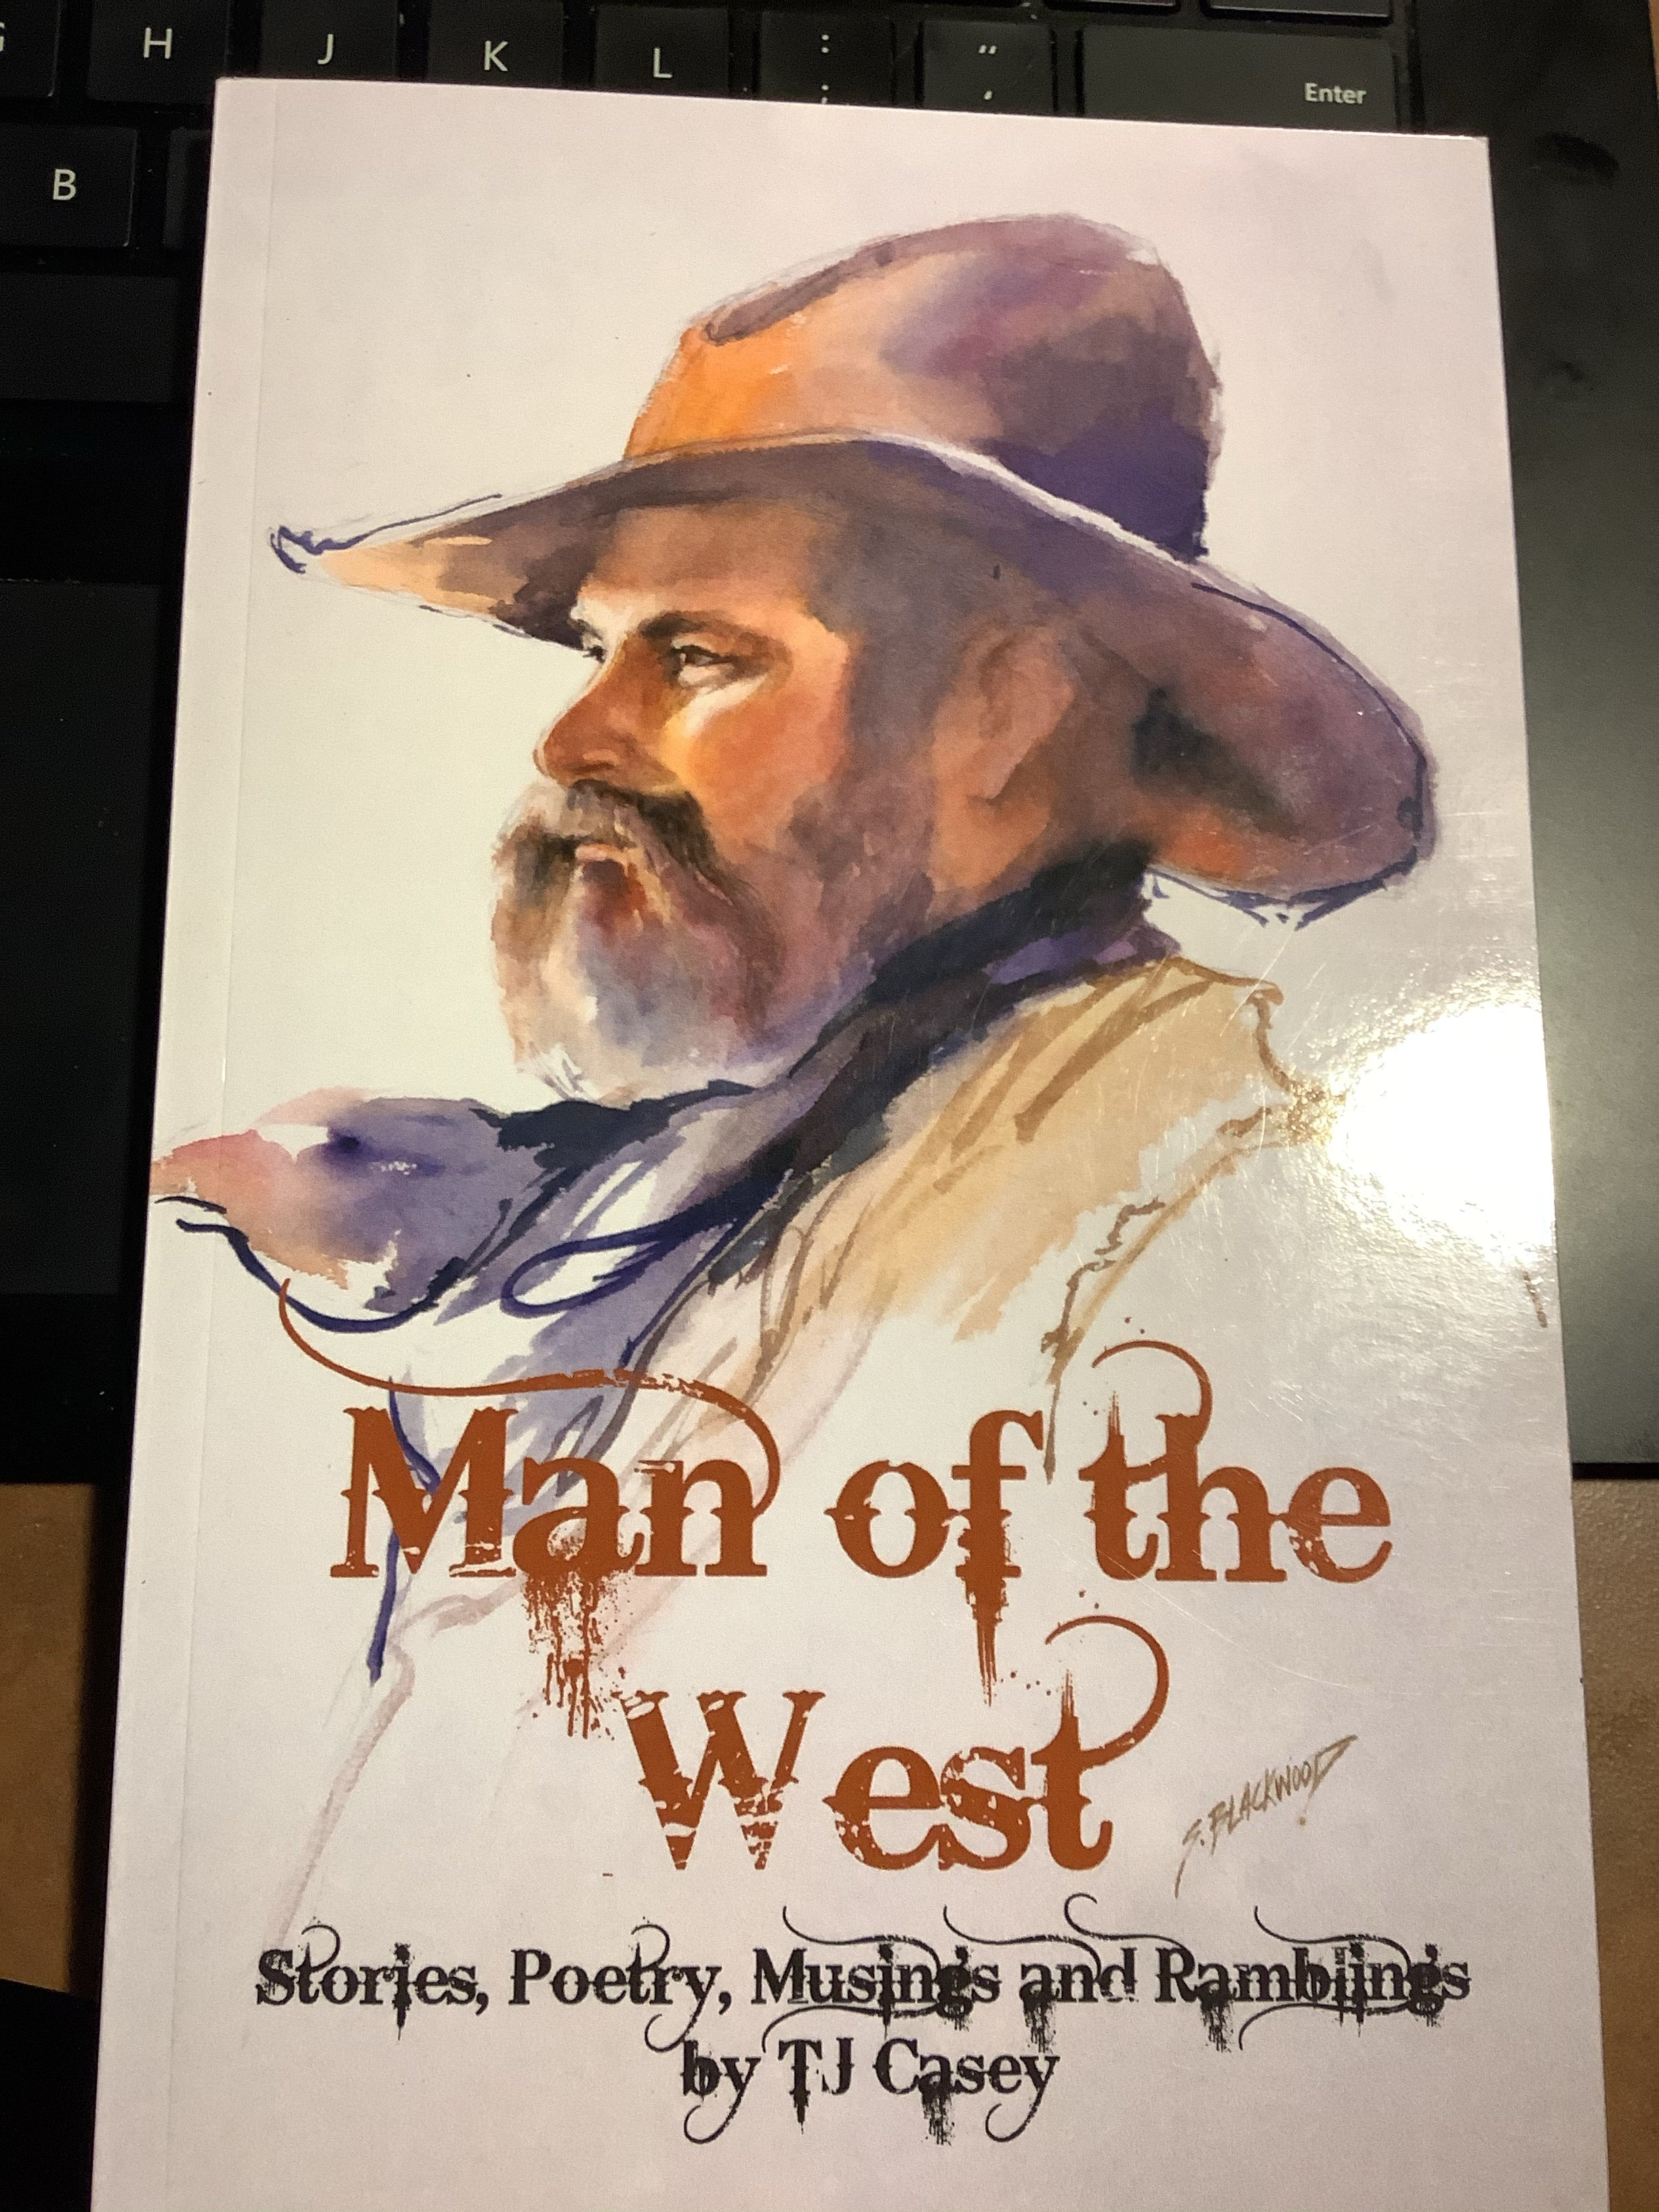 BOOKS - Man of the West - Stories, Poetry, Musings and Ramblings by TJ Casey